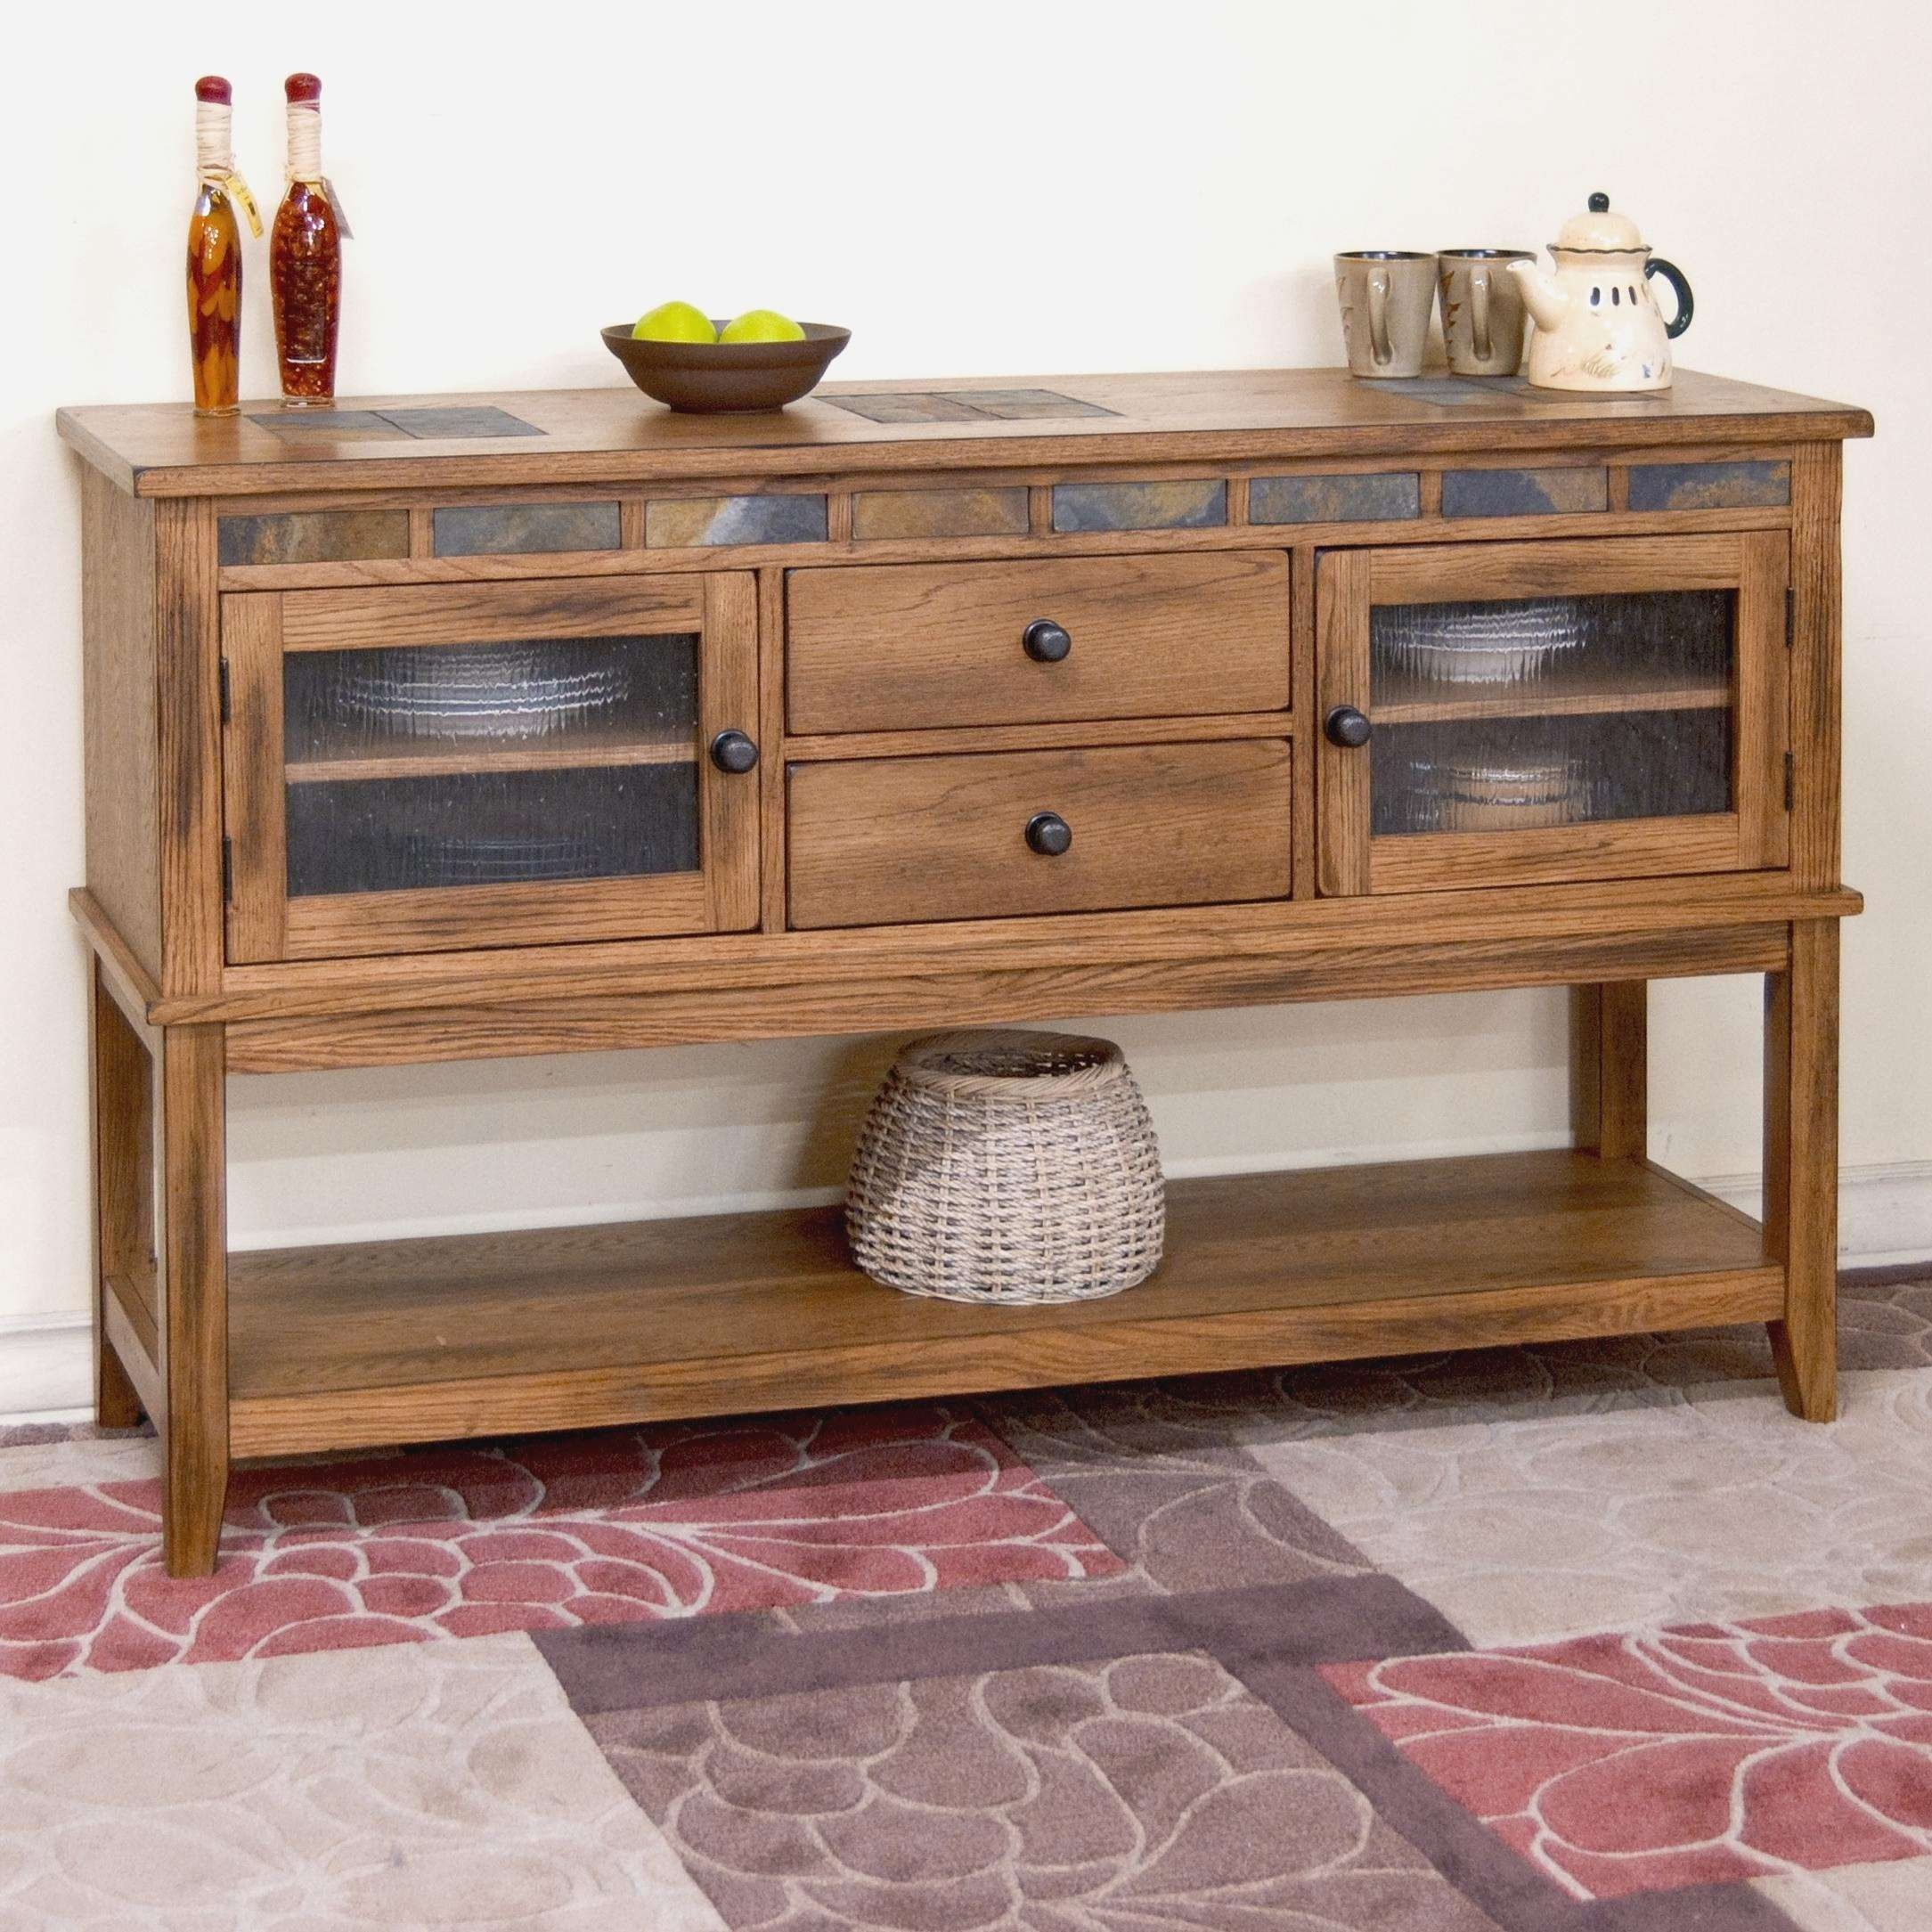 Beautiful Sideboards And Servers – Bjdgjy In Sideboards And Servers (View 1 of 20)